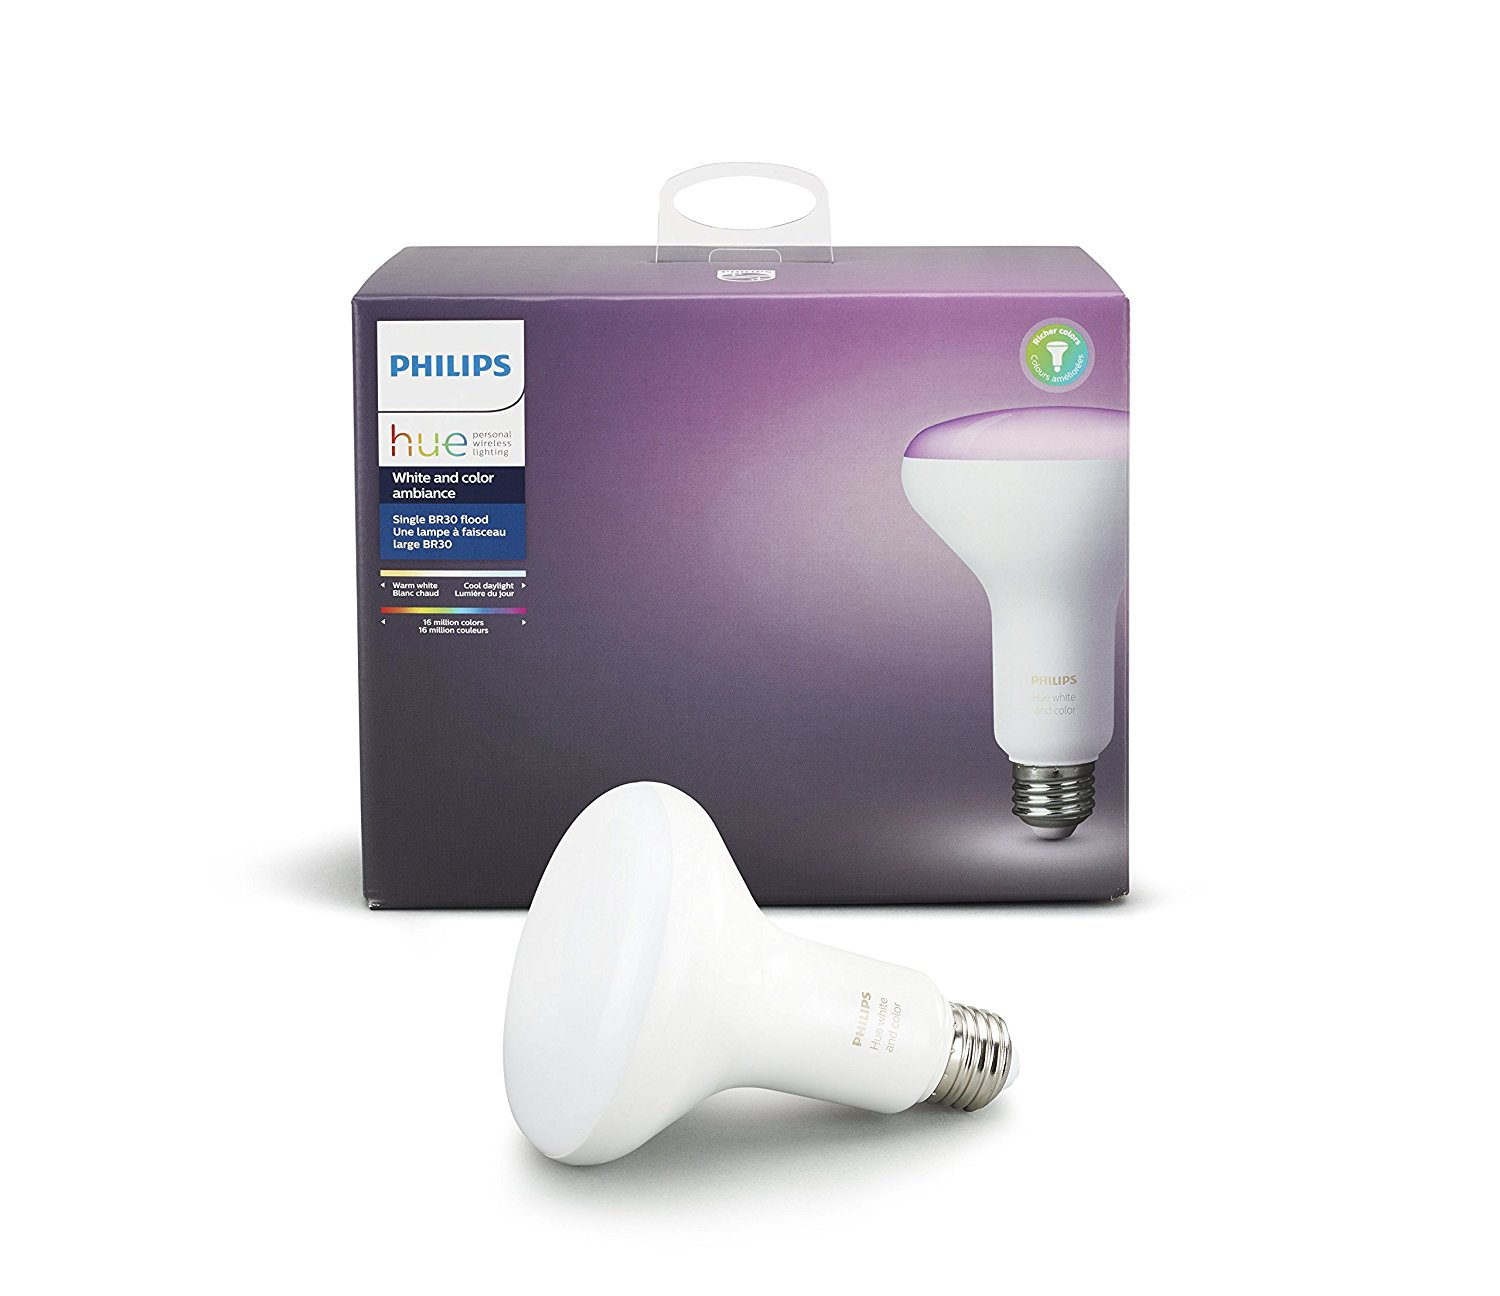 Philips Hue White and Color Ambiance BR30 60W Equivalent Dimmable LED Smart Flood Light